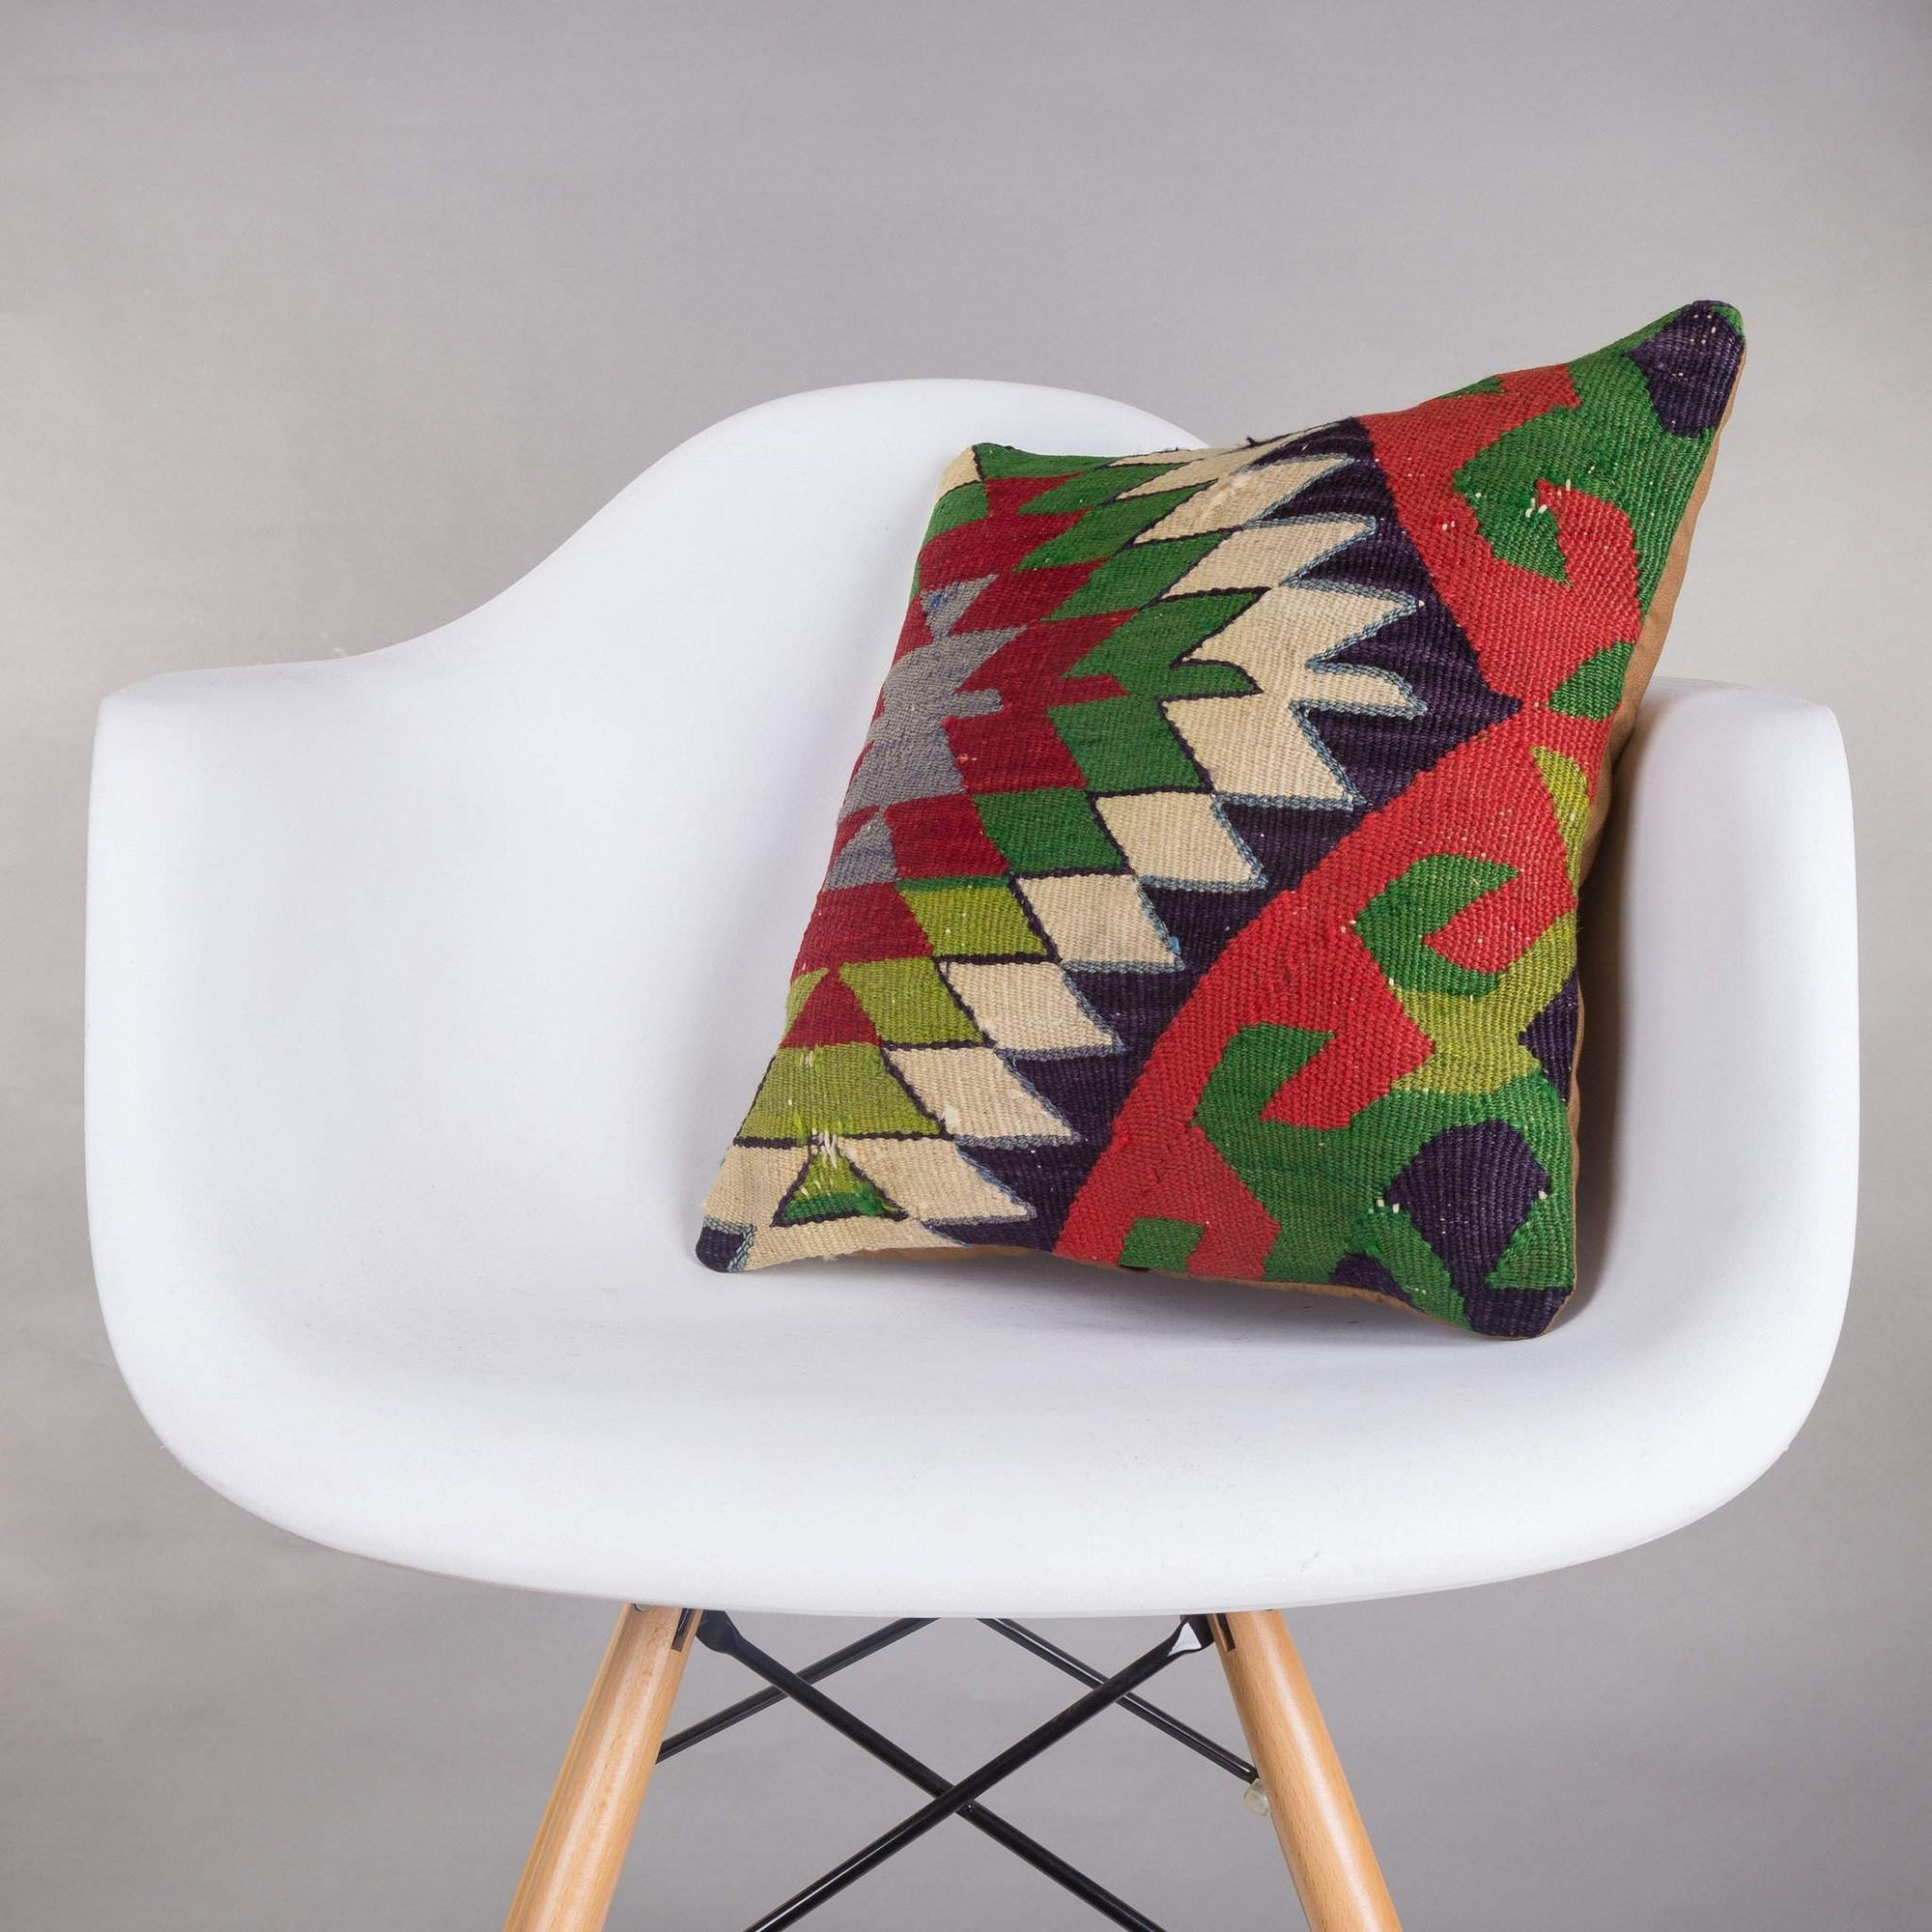 Chevron Multi Color Kilim Pillow Cover 16x16 5063 - kilimpillowstore  - 1